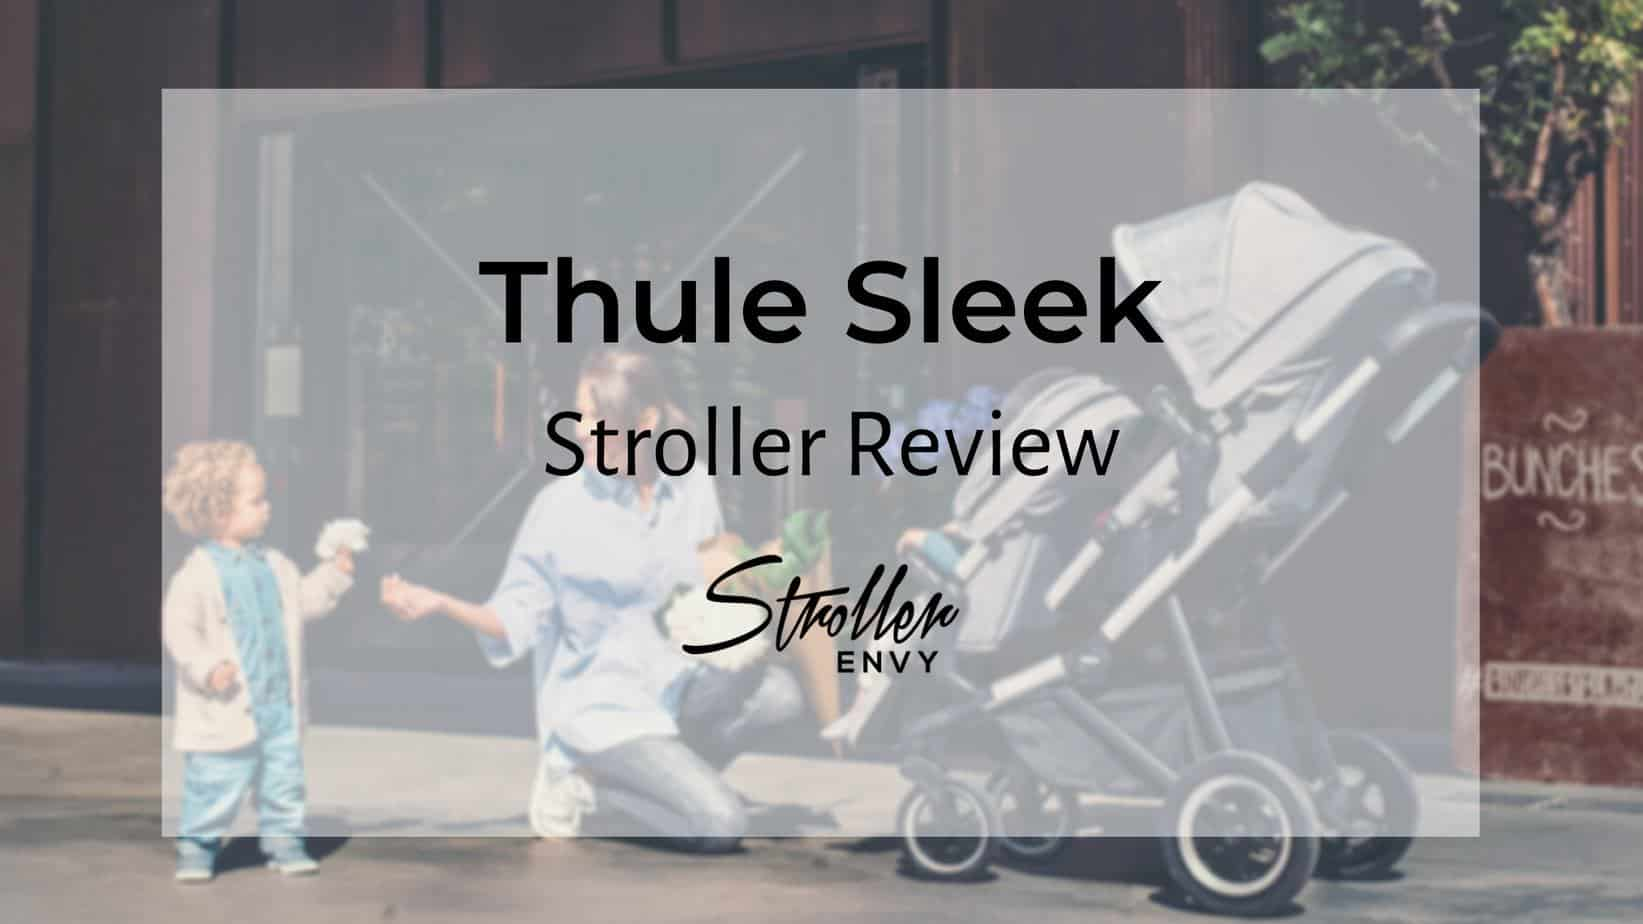 thule sleek stroller review